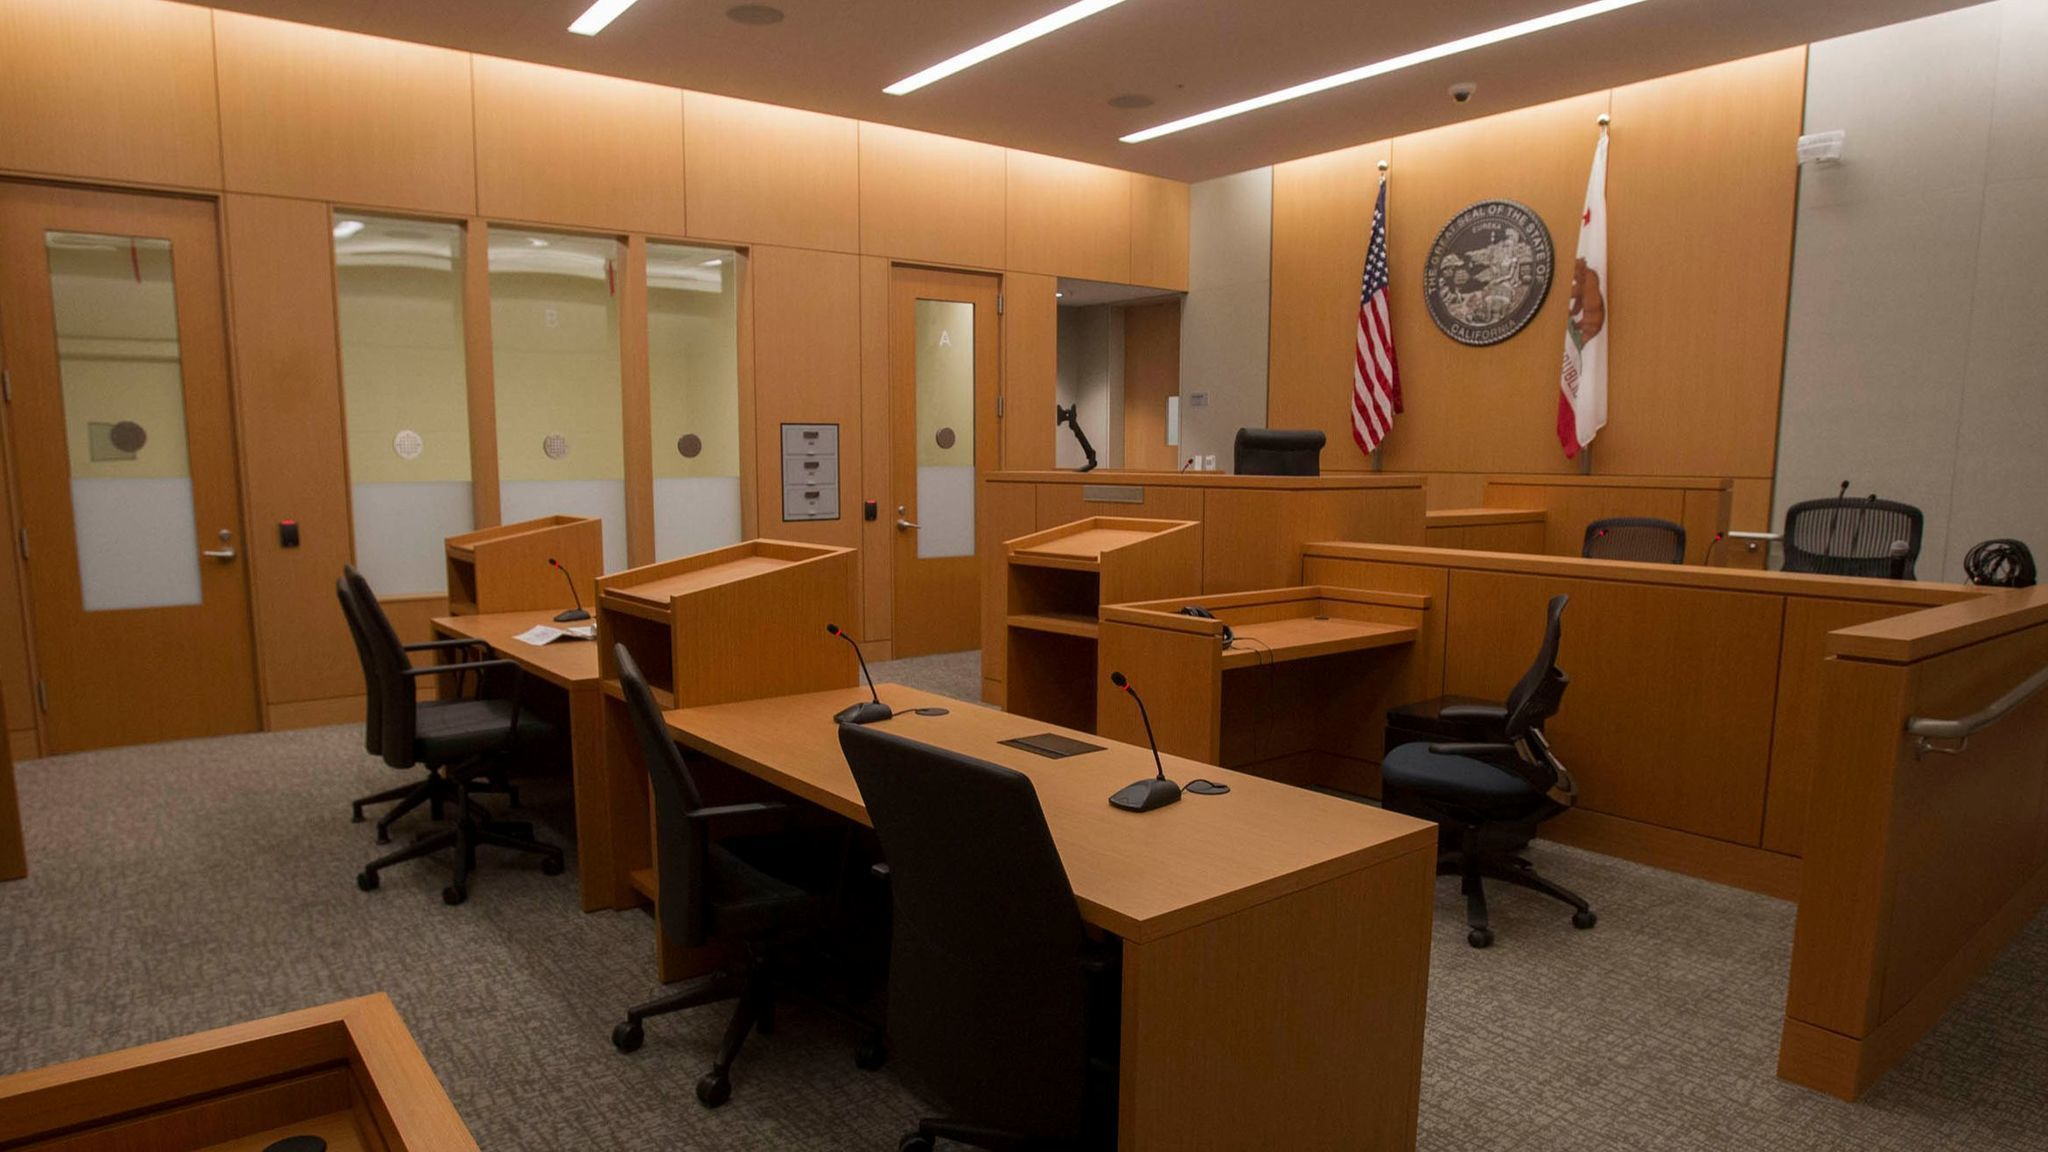 San Diego courthouse move-in delayed — again - The San ...